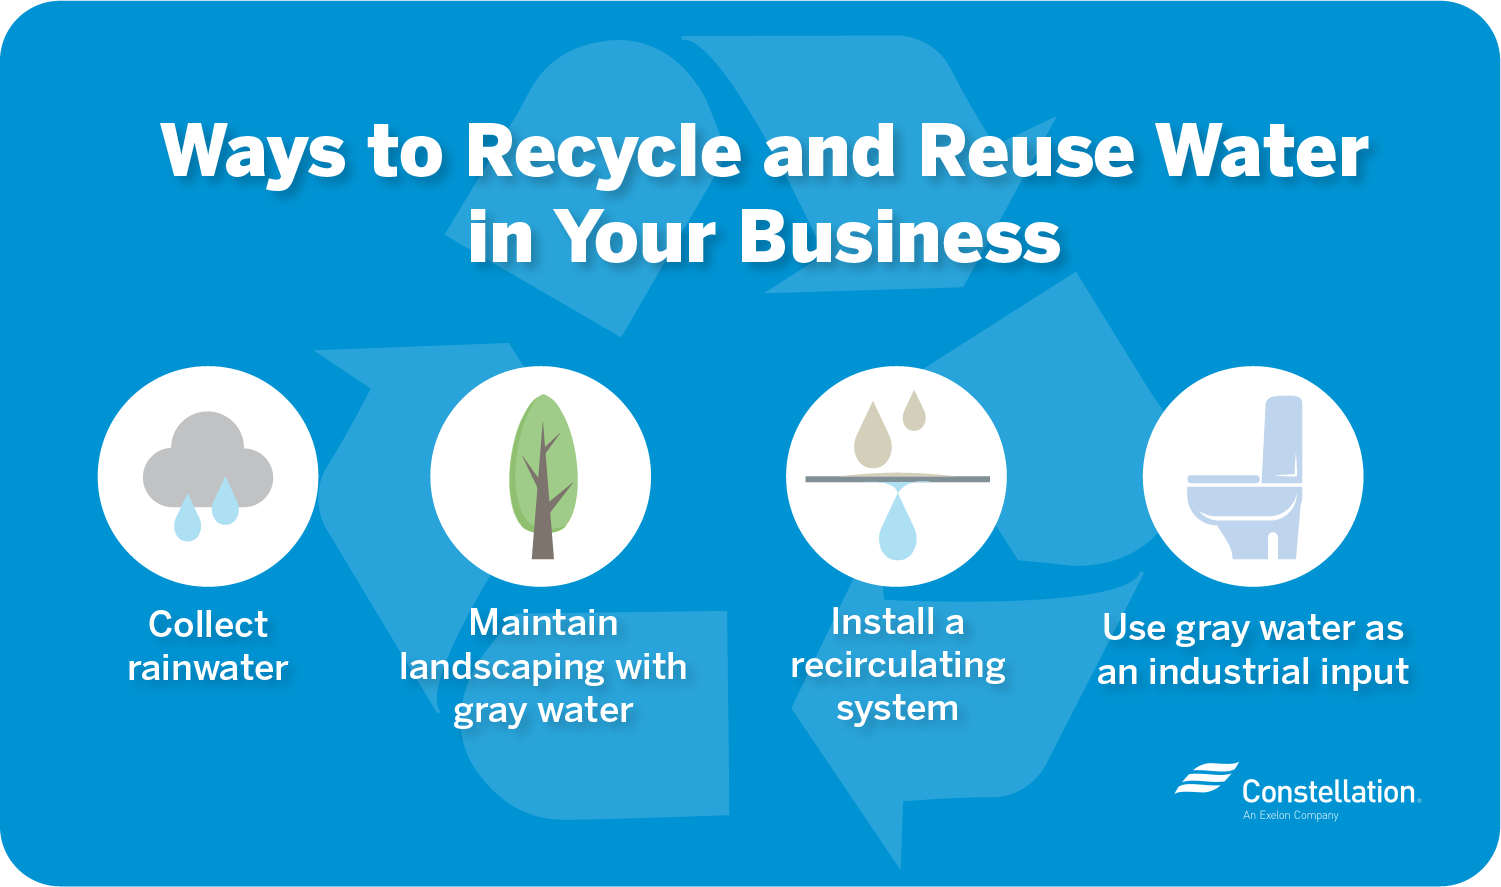 Ways to recycle and reuse water in your business